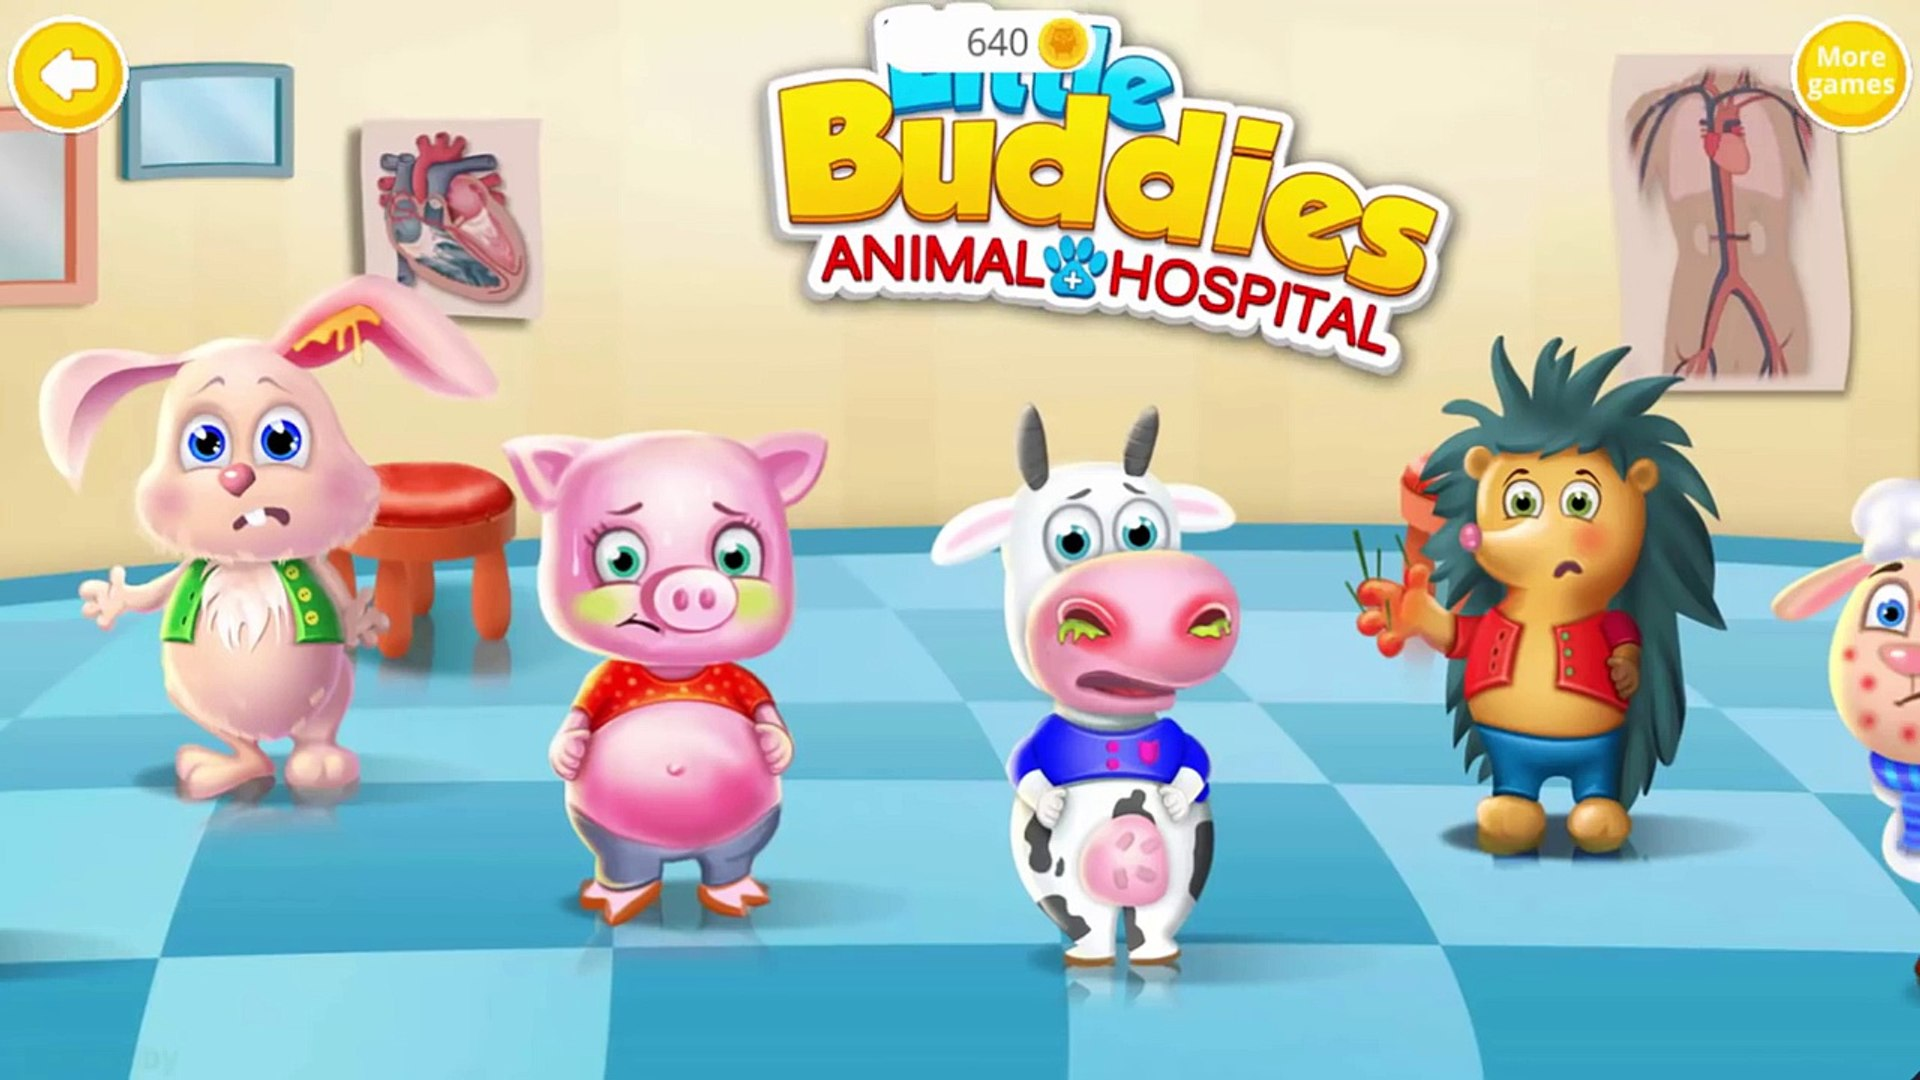 Animals Doctor Care | Hospital of Animals